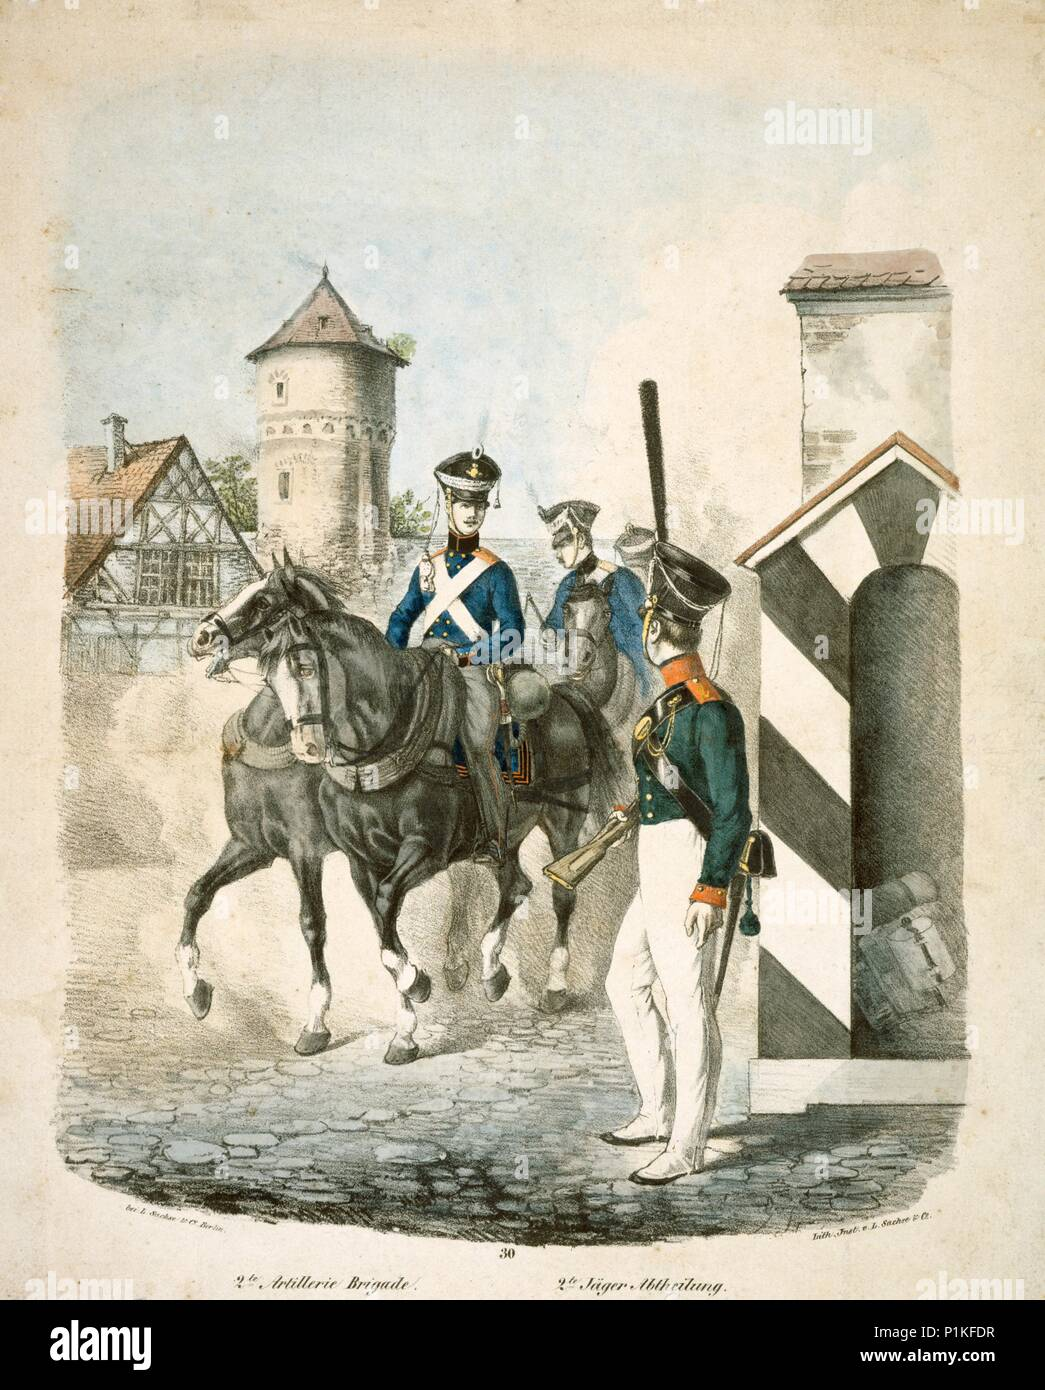 Prussian soldiers, early 19th century. Engraving of Prussian soldiers of the Napoleonic Wars produced in Berlin. Foot Artillery drivers (2 Artillerie  - Stock Image